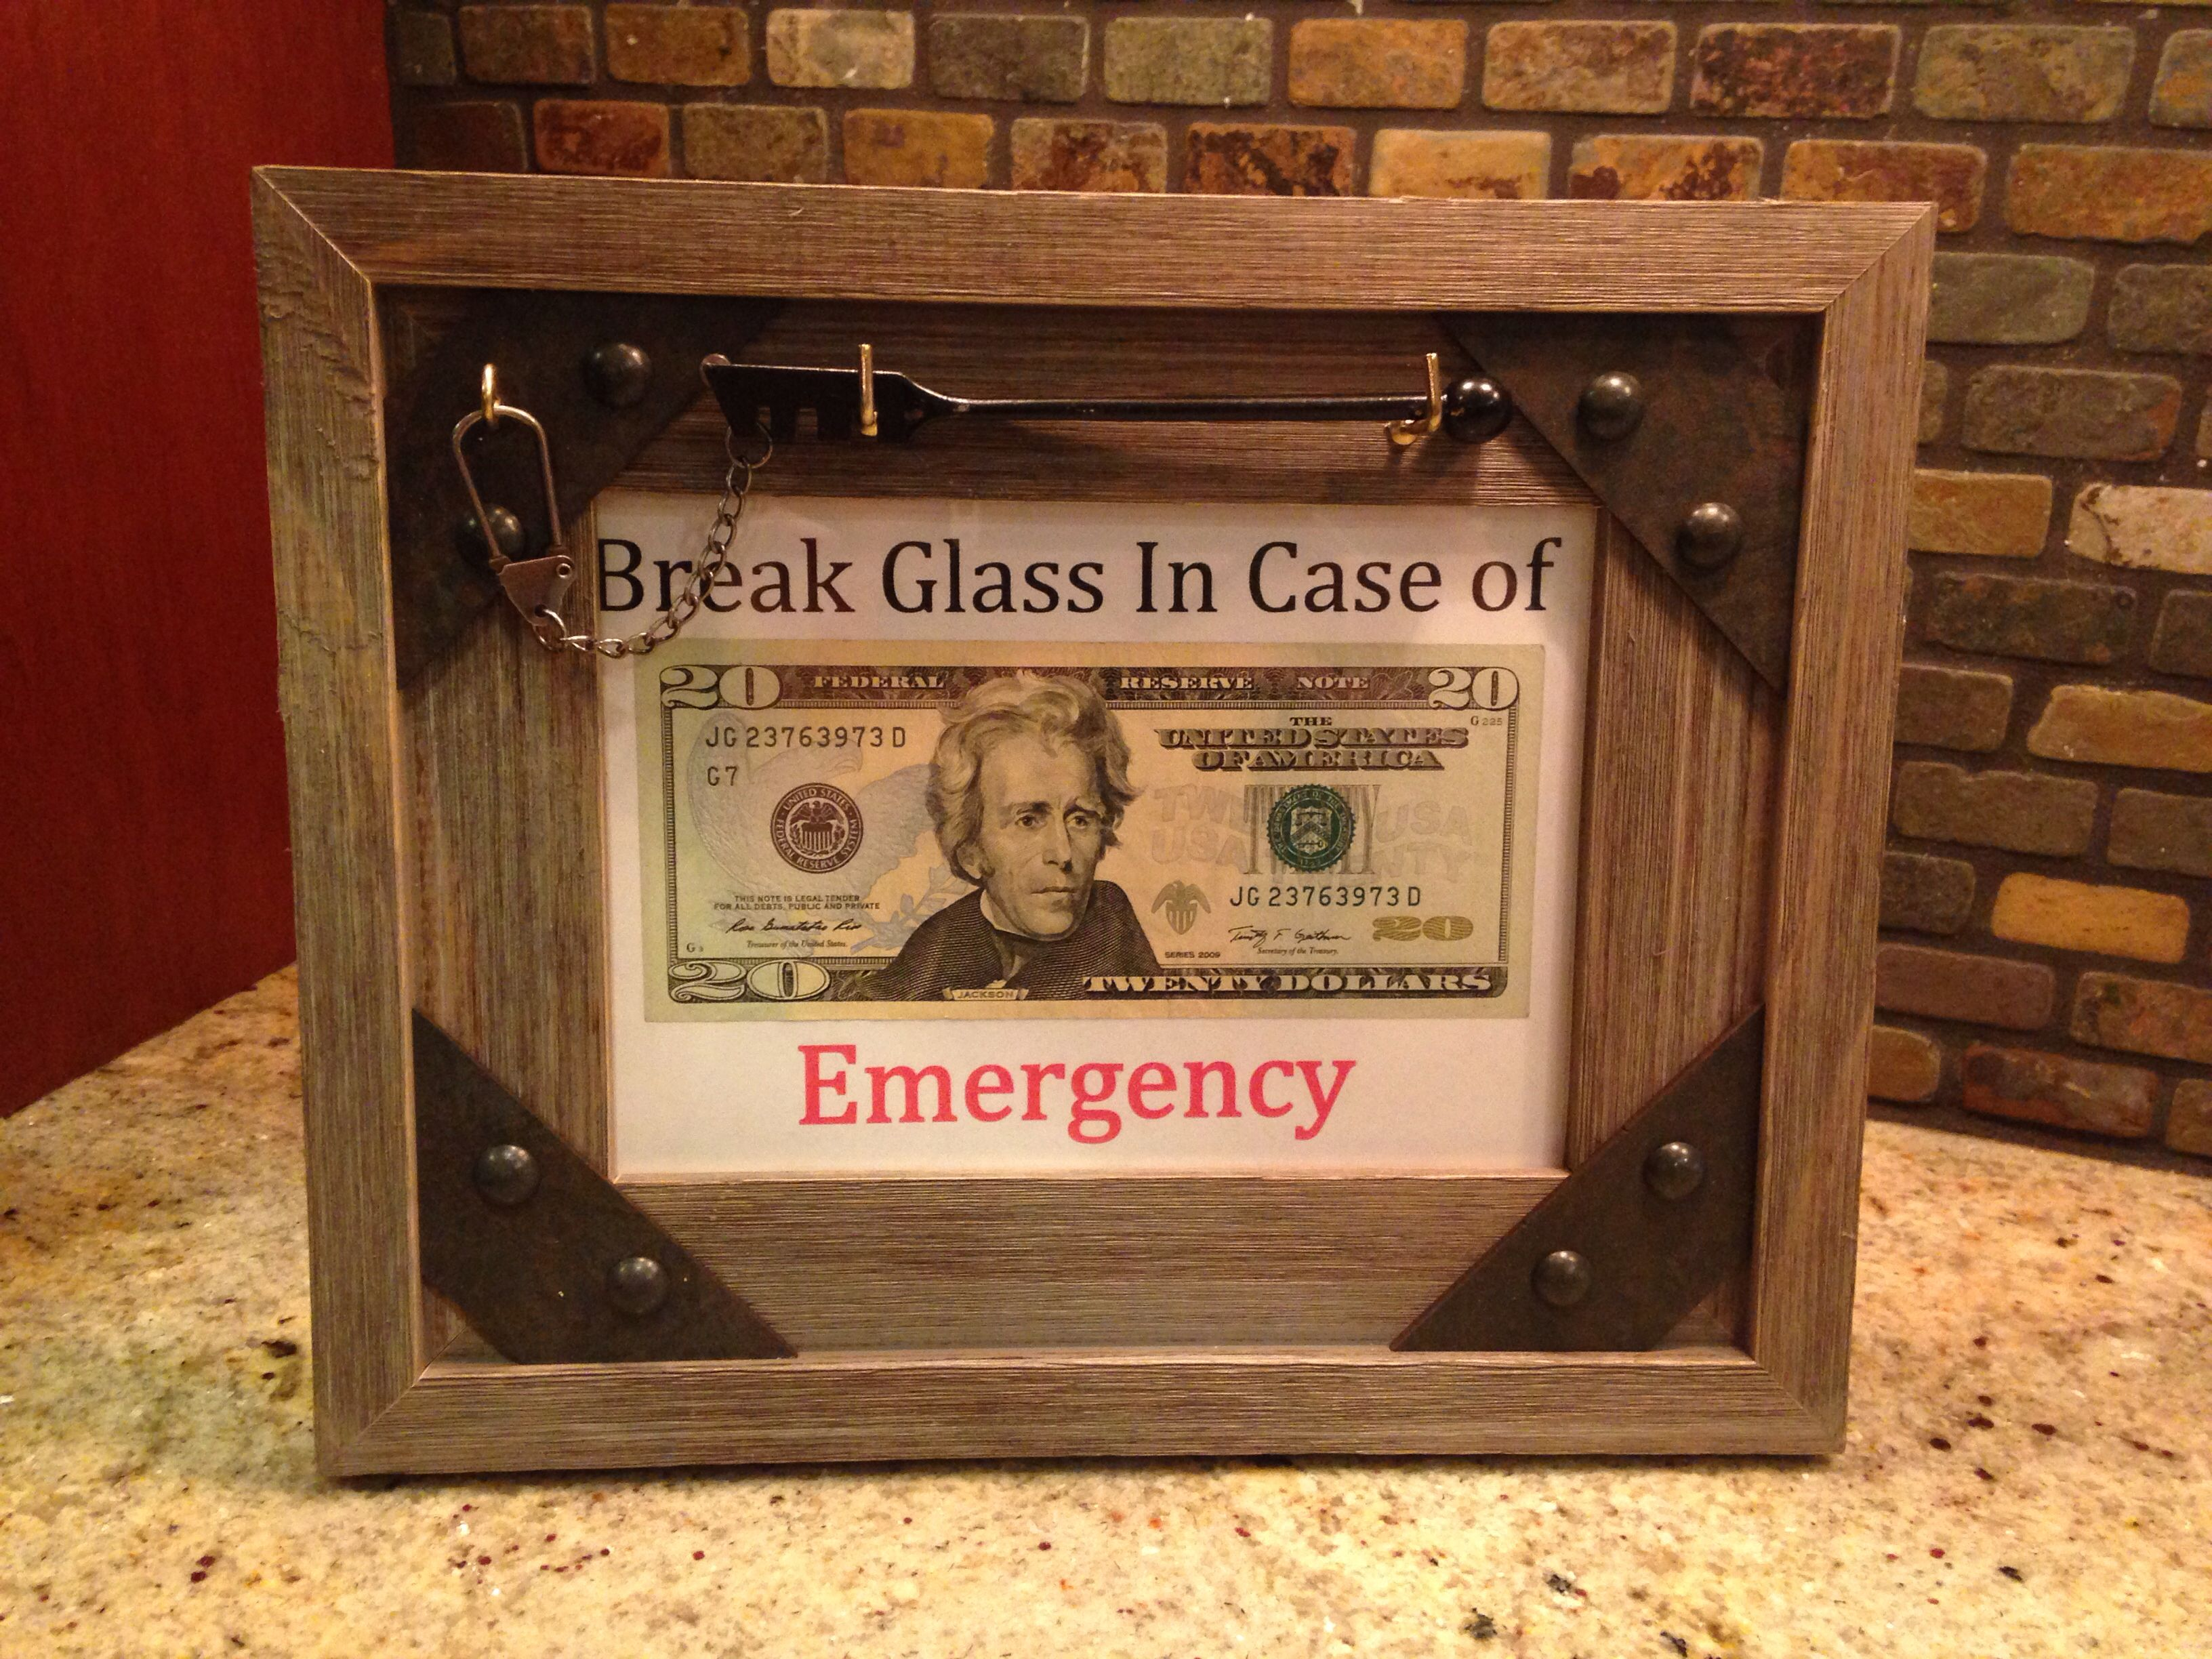 Diy graduation gift break glass in case of emergency w 20 bill buy picture frame hanging hardware and glass breaker at local hardware or craft store add 20 bill print out background jeuxipadfo Images